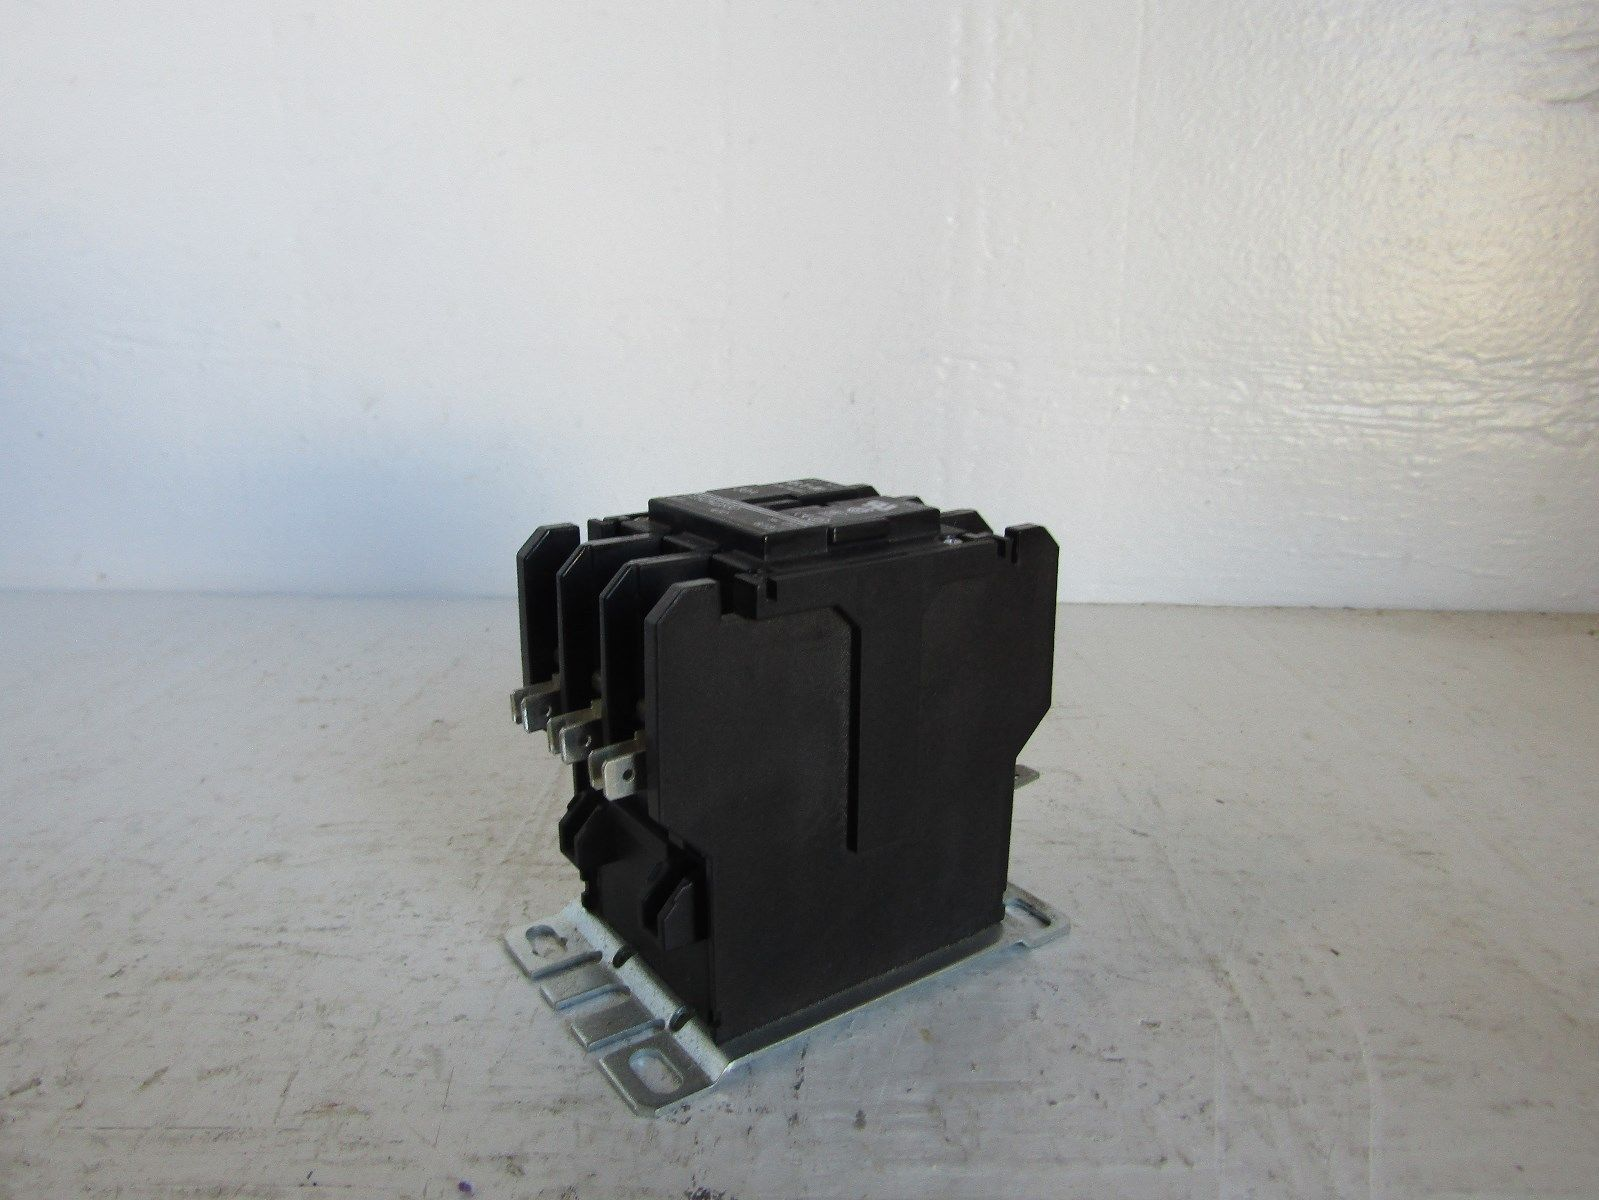 CUTLER HAMMER C25DND330 30 AMP 3 POLE CONTACTOR 120 VOLT COIL 331989252131 2?fit\=1000%2C750\&ssl\=1 c25dnd330 wiring diagram 3 phase contactor wiring diagram start Eaton C25dnf340 Contactor at nearapp.co